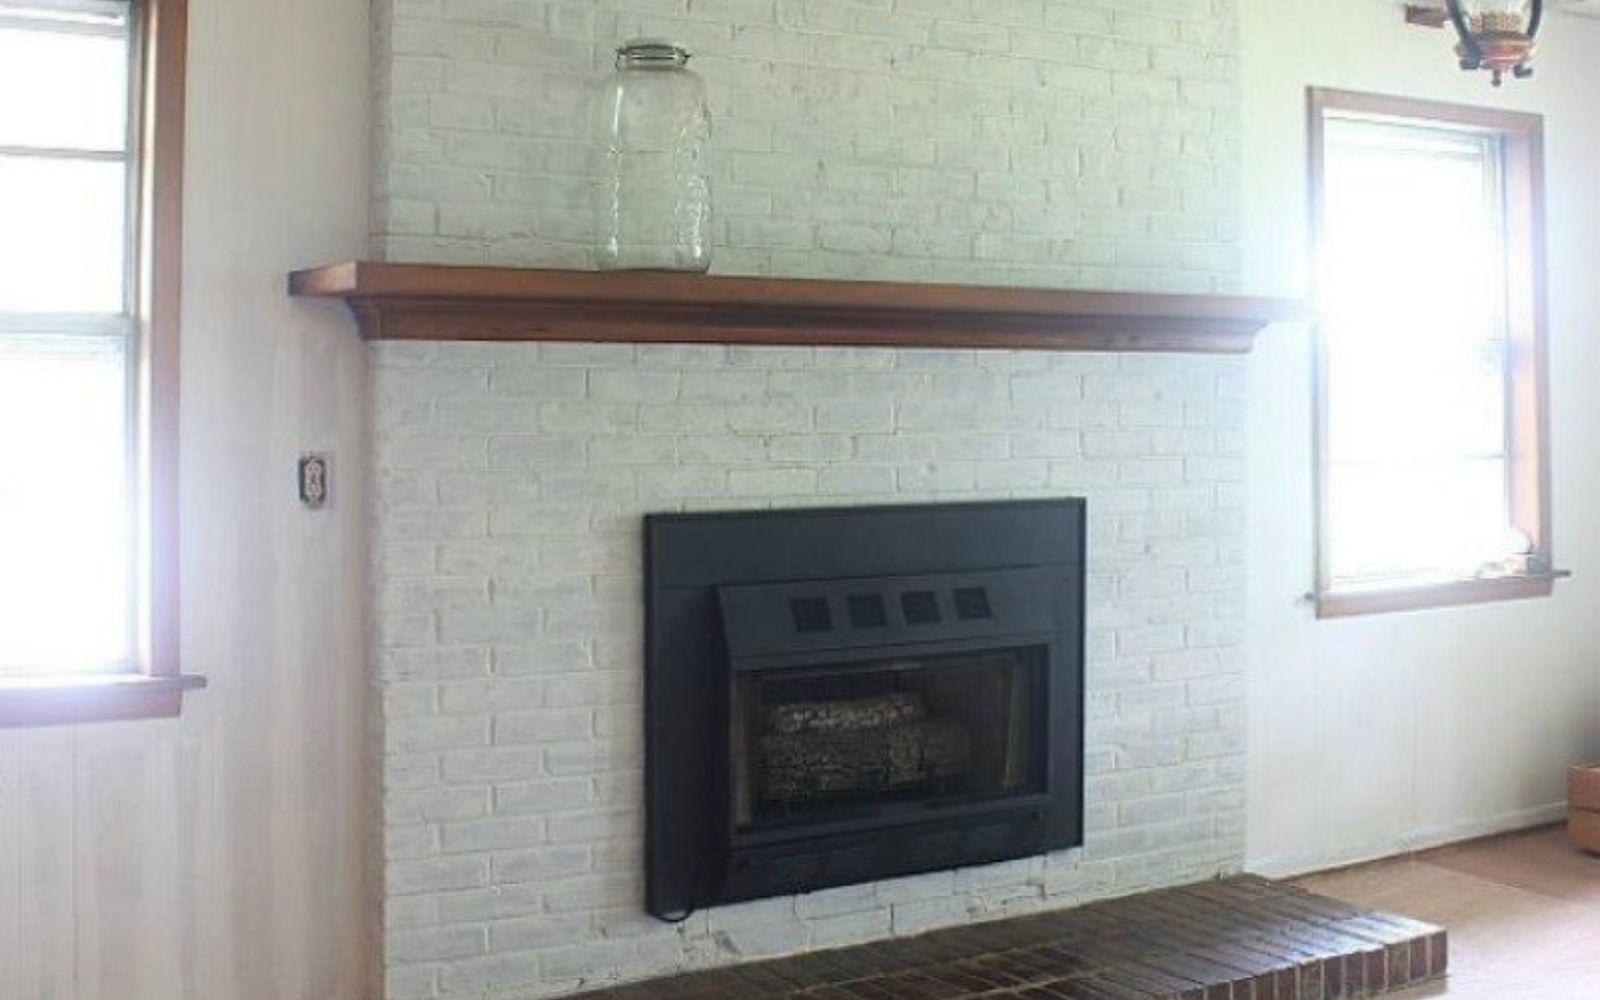 s 10 gorgeous ways to transform a brick fireplace without replacing it, concrete masonry, fireplaces mantels, The fix Paint the brick a bright color